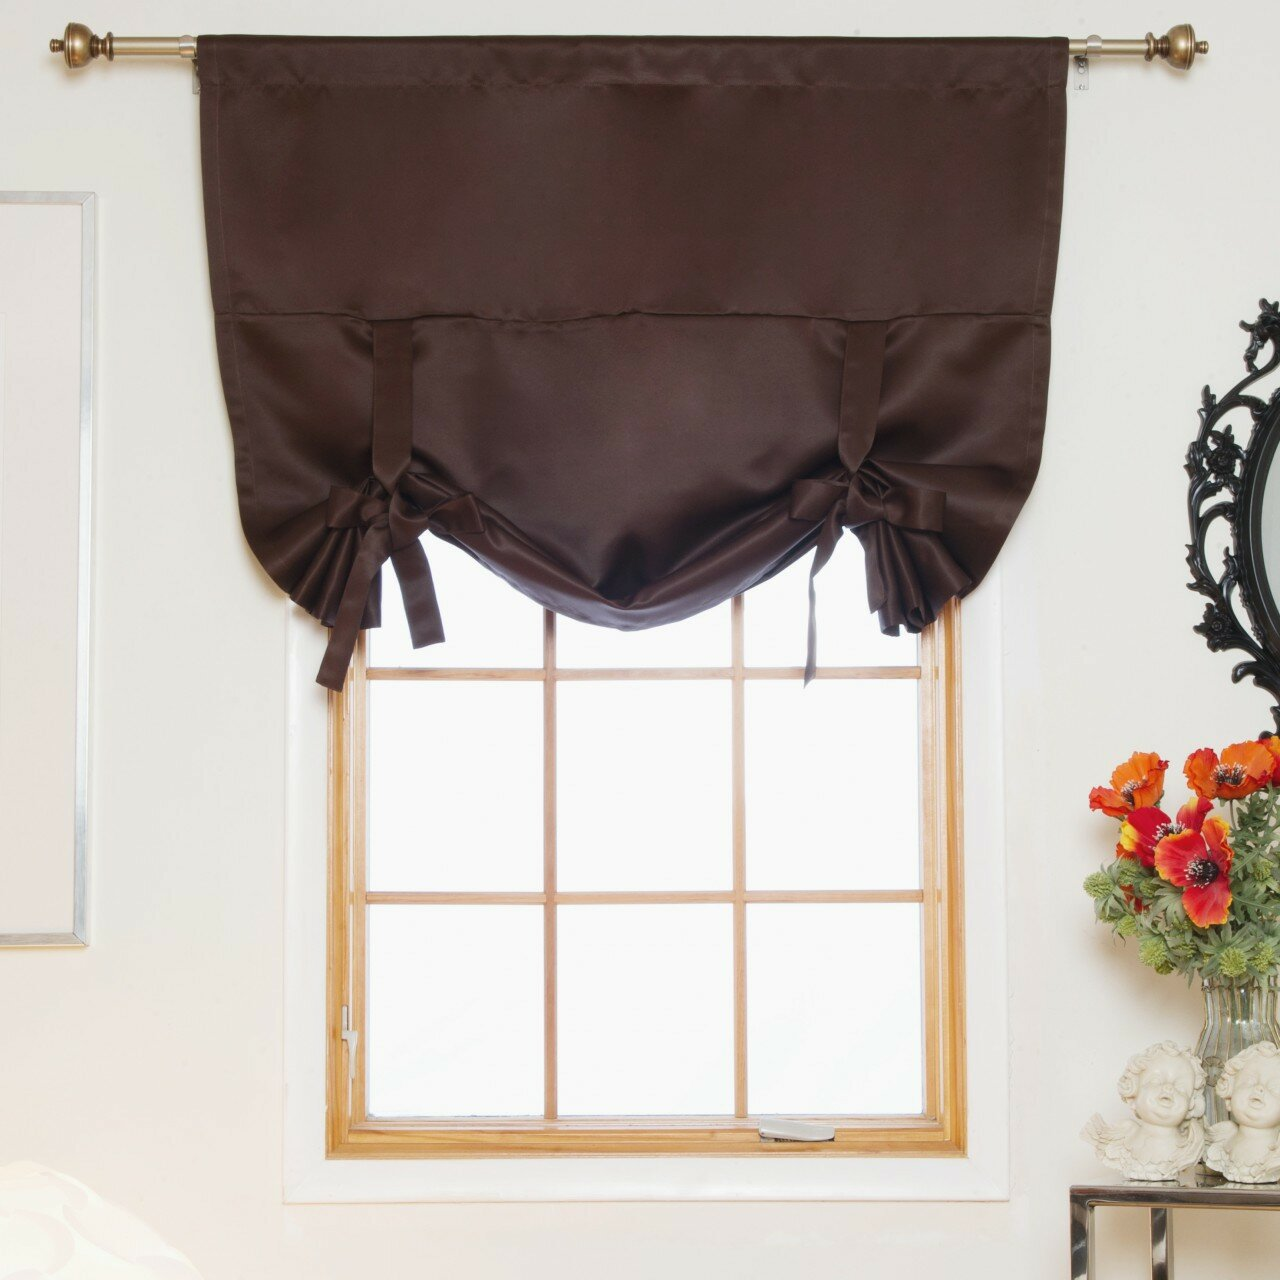 blackout curtain tie up room darkening single curtain valence ebay. Black Bedroom Furniture Sets. Home Design Ideas